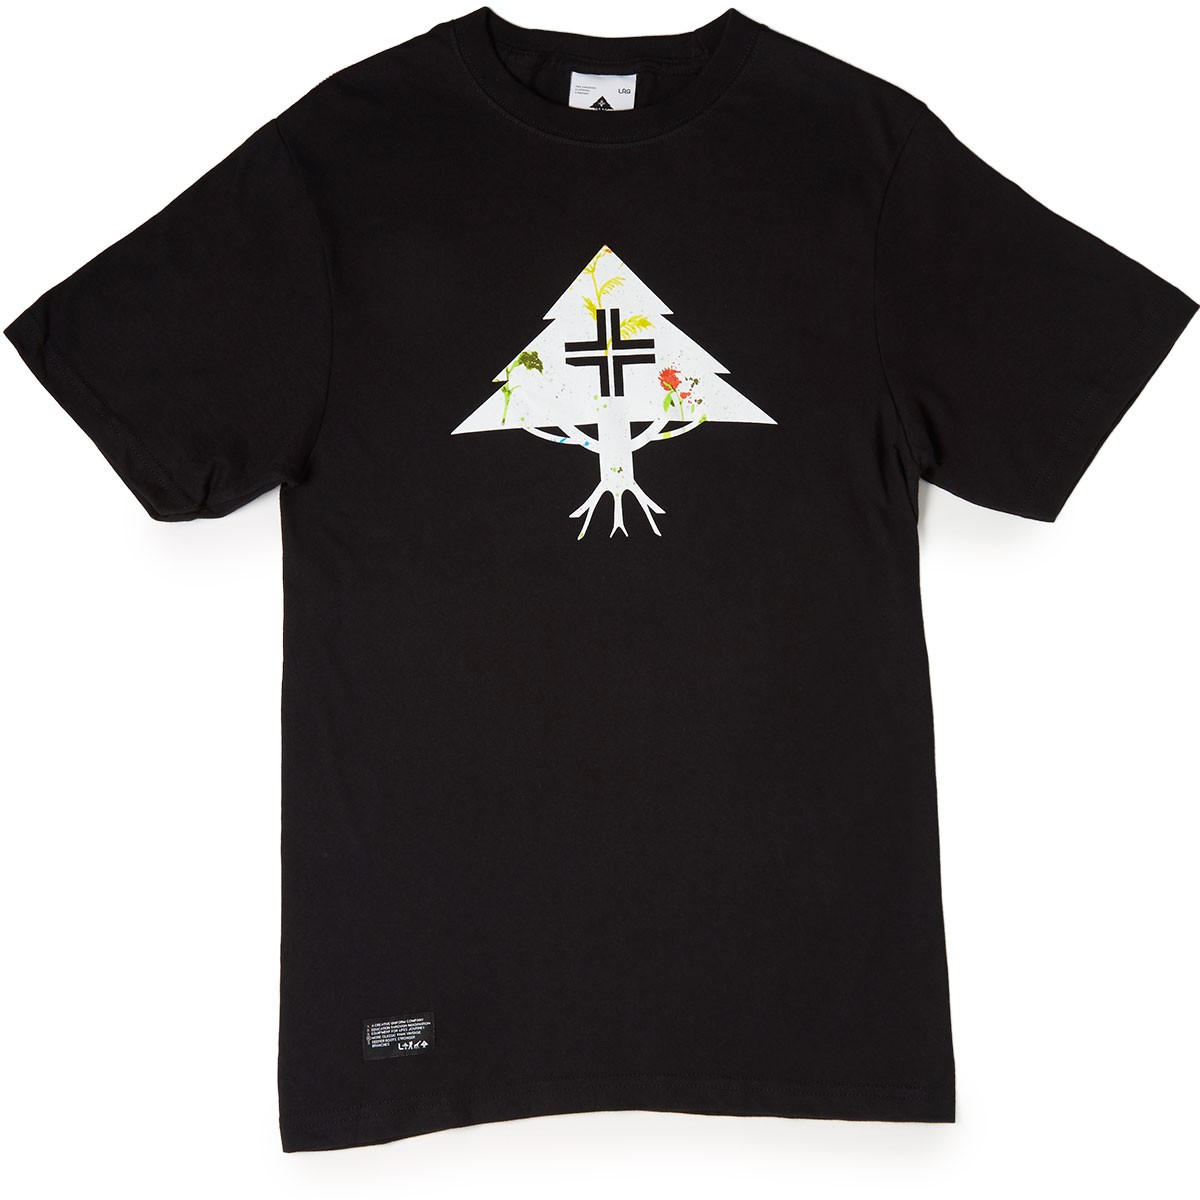 LRG RC Round About T-Shirt - Black